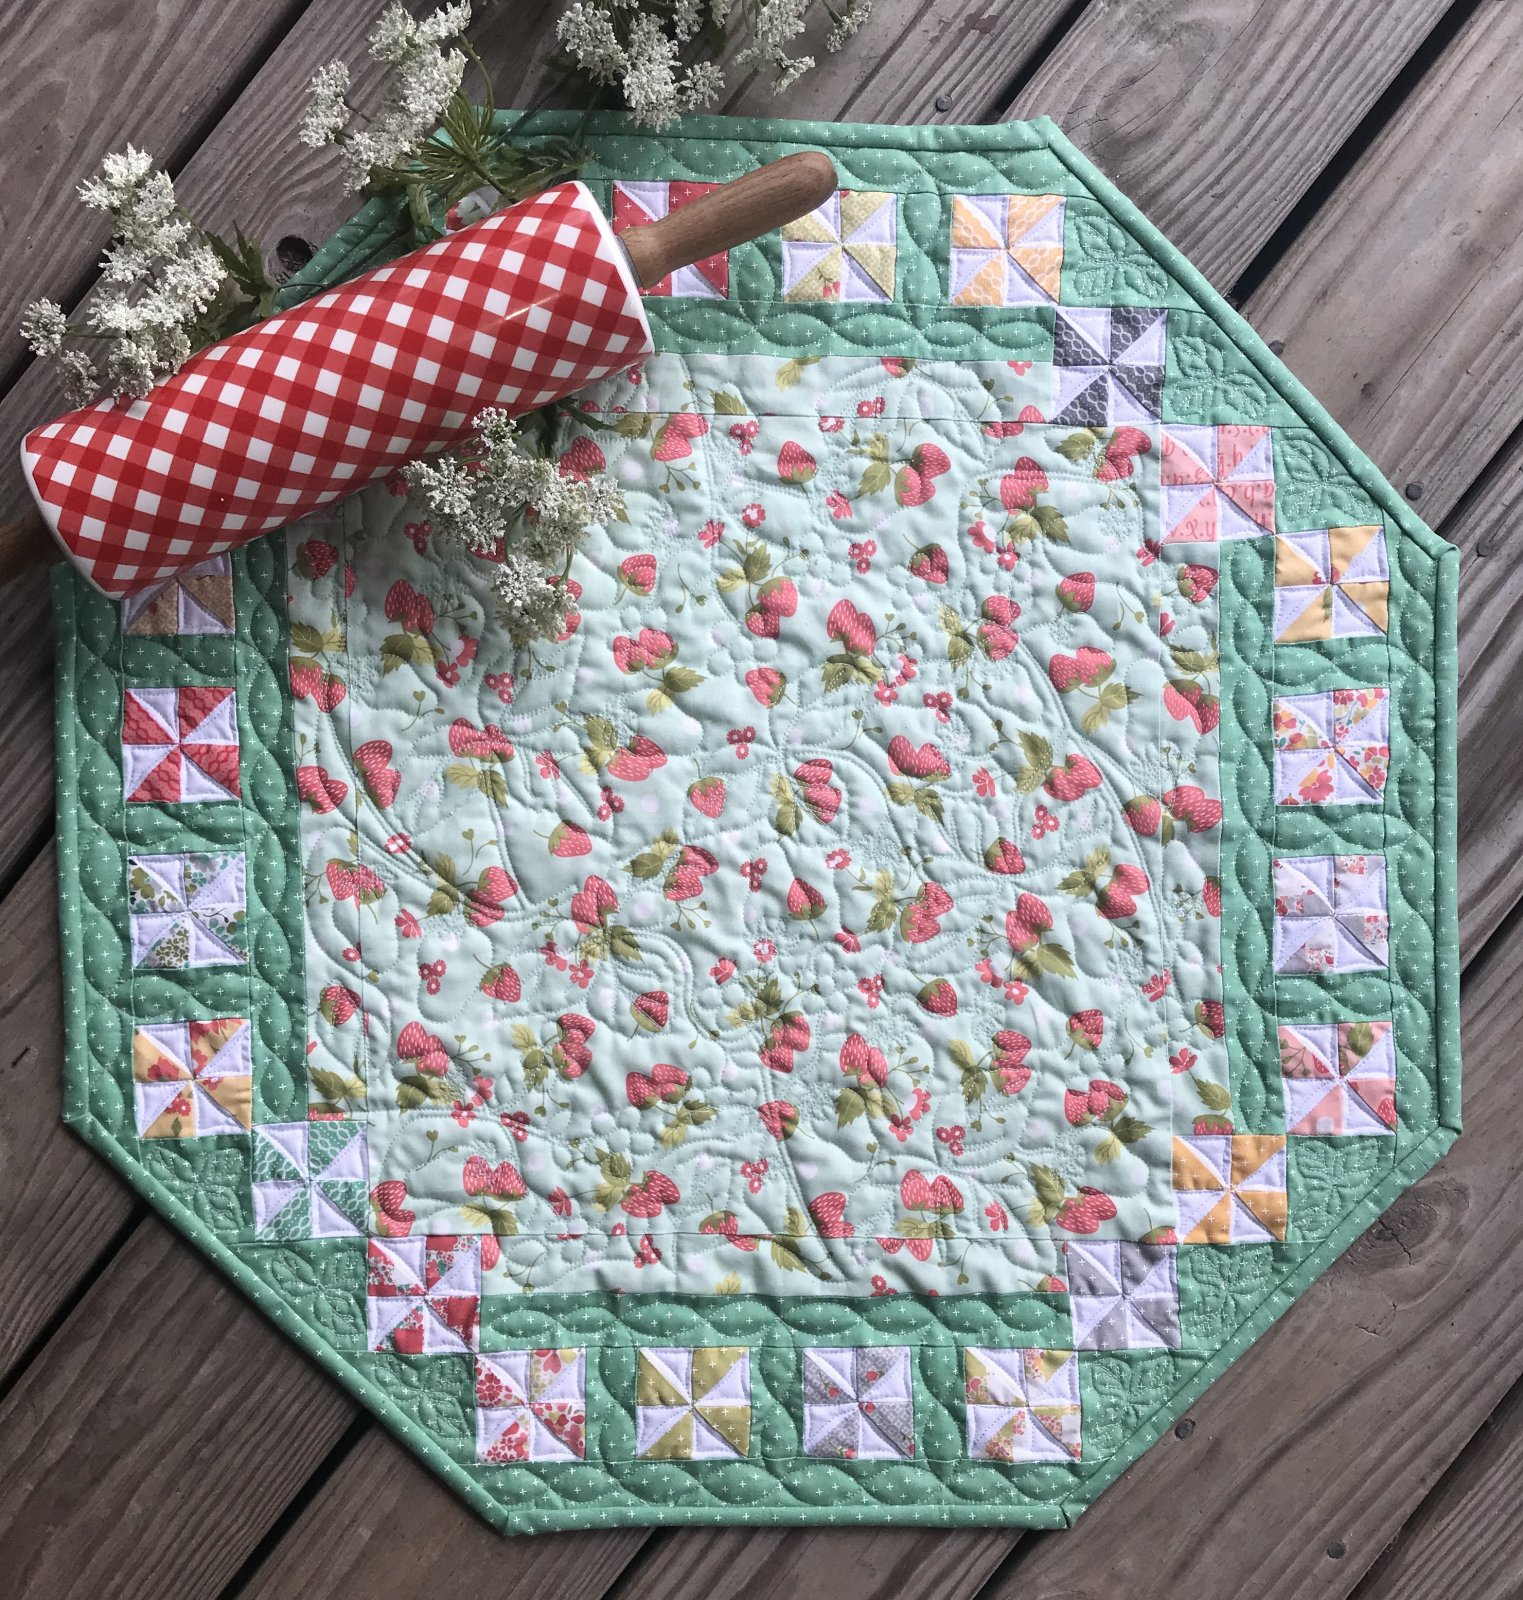 Charm-Ing Table Topper